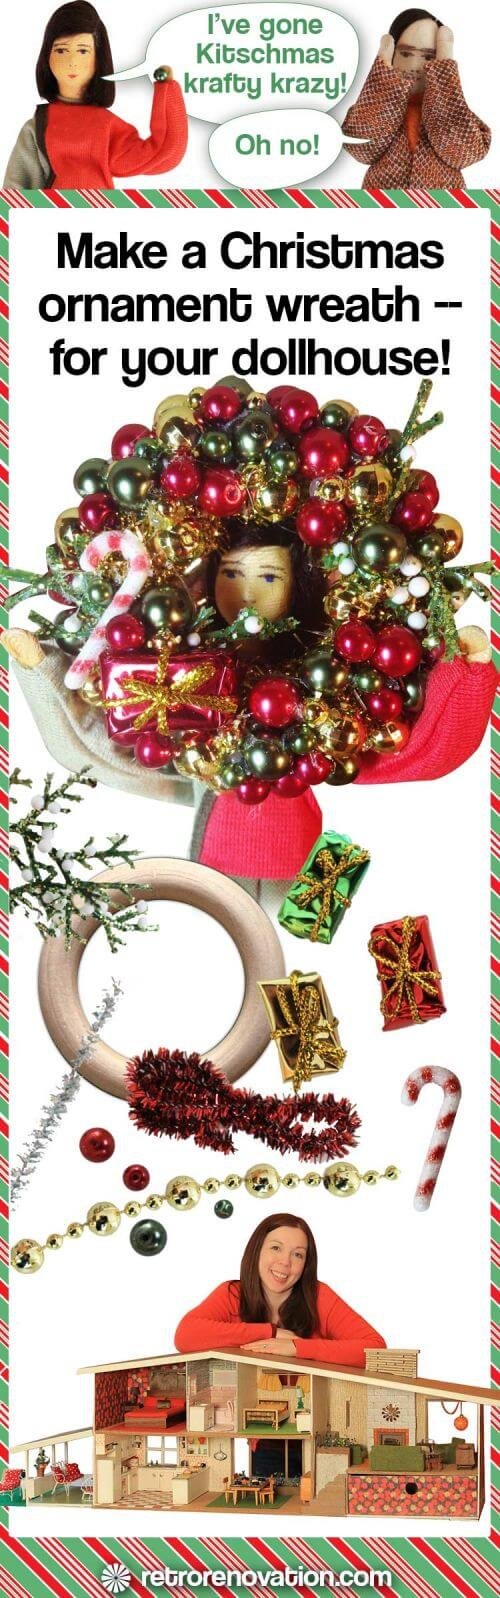 Dollhouse-Ornament-wreath-Long-tall2